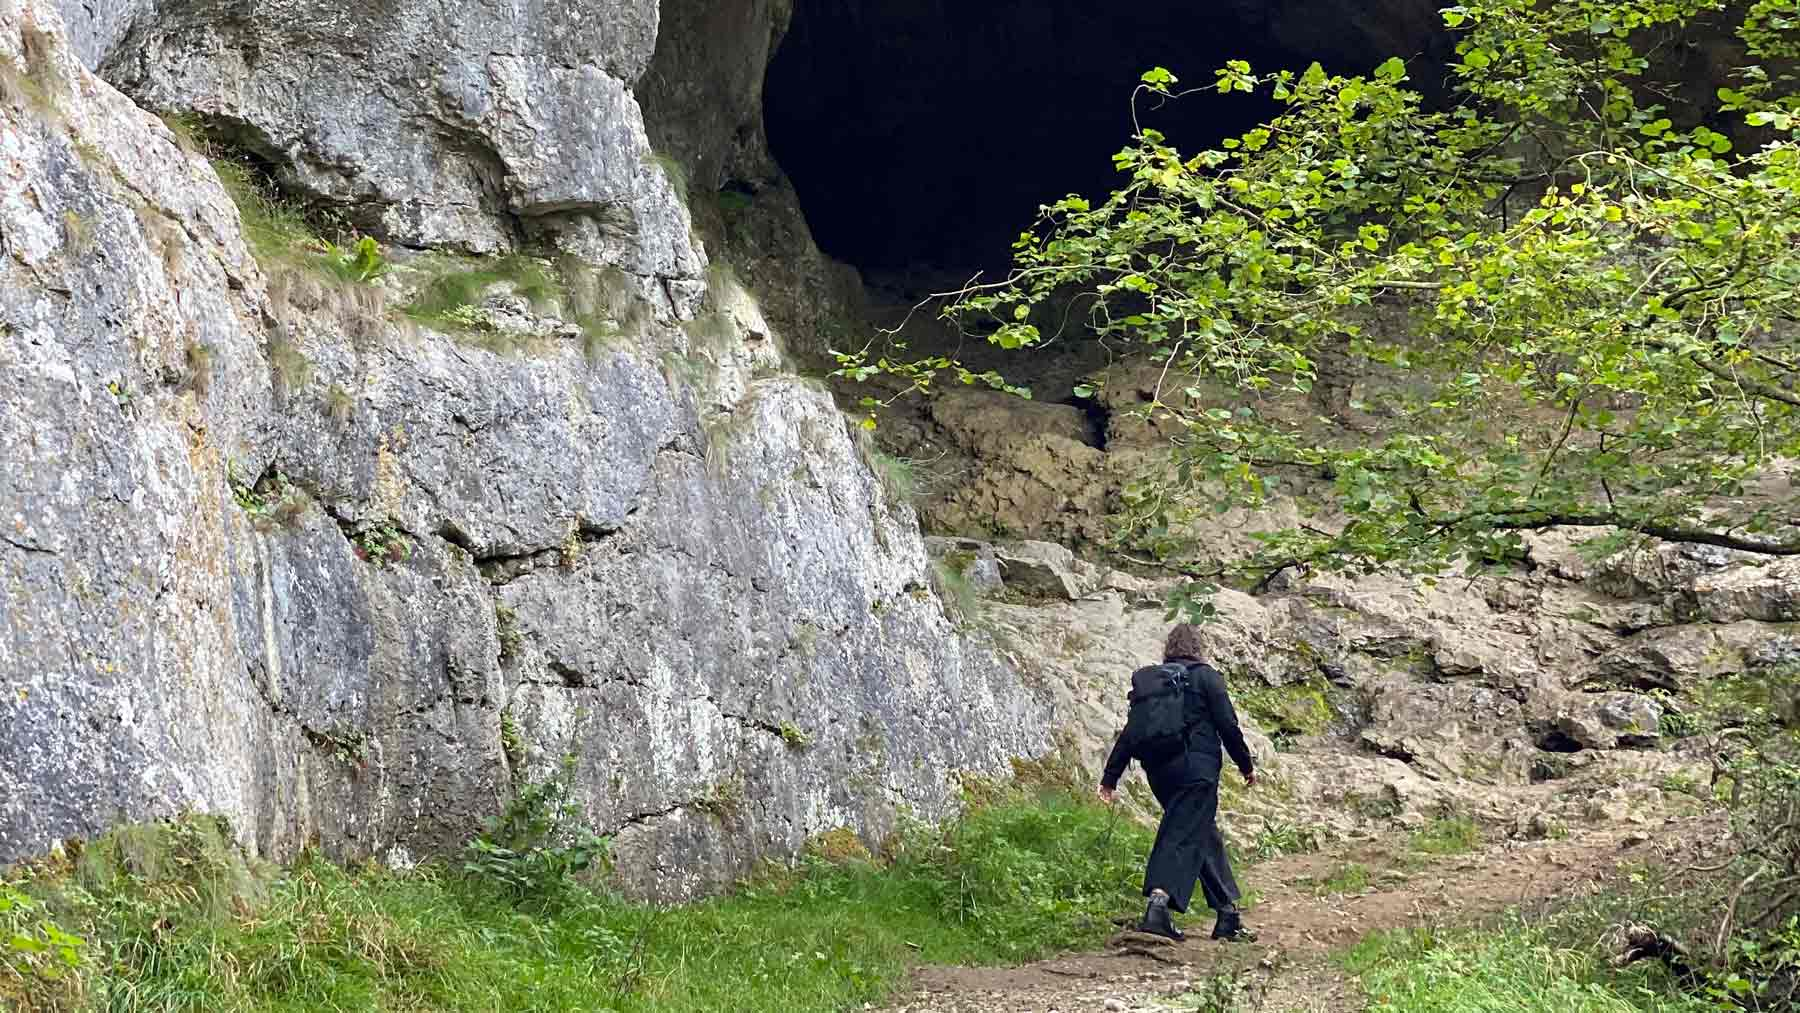 Clare walking near a cave next to the River Dove in the Peak District wearing the Asmuss Wide Leg Trousers and Pleated Zip Through Sweat